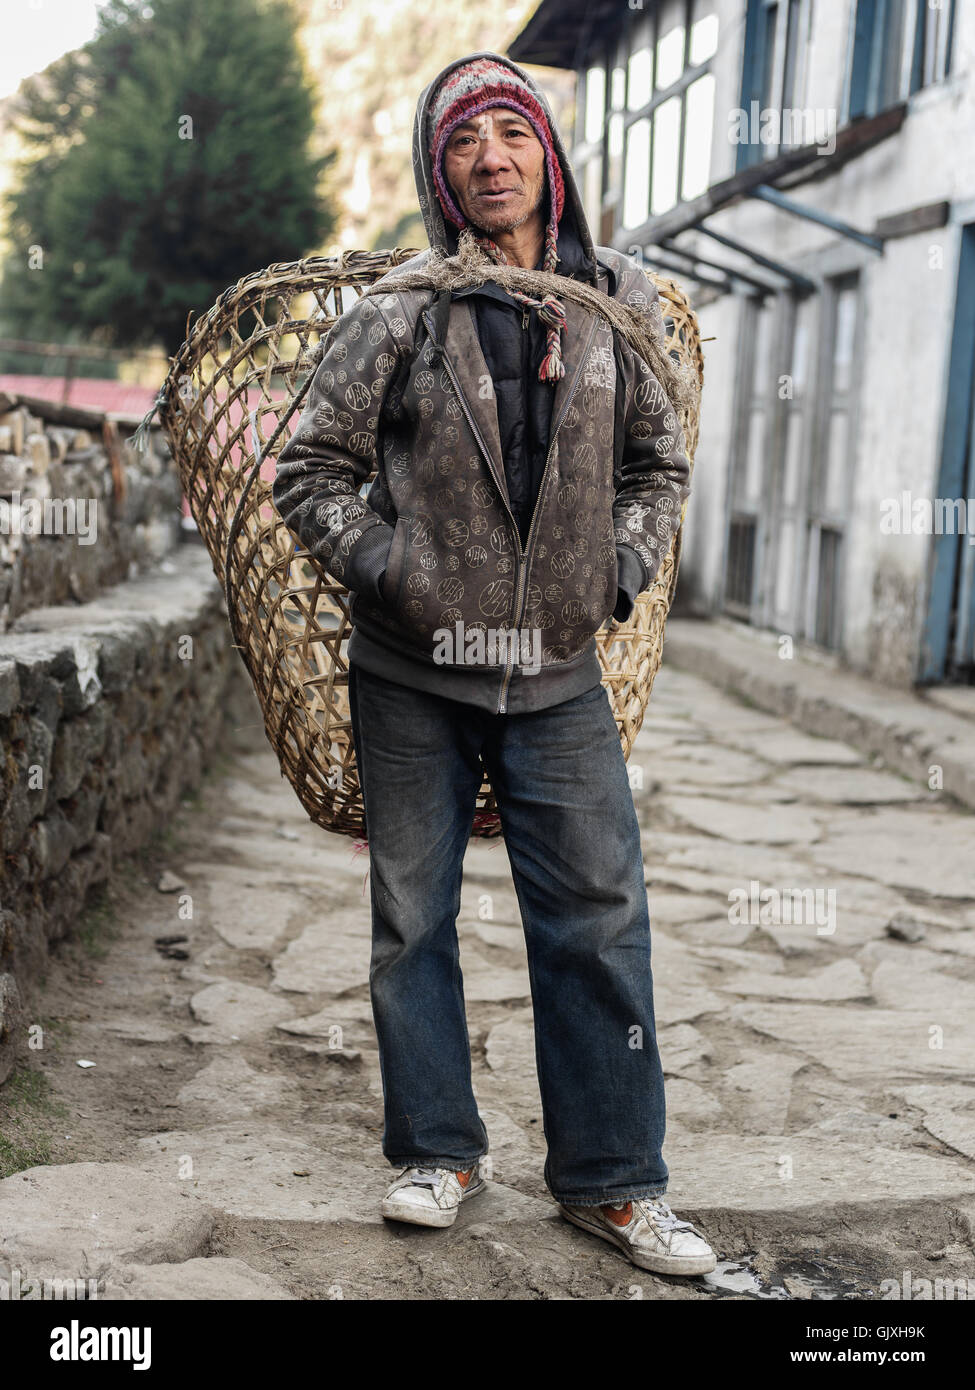 A Nepalese man carries his product in a basket backpack near Phakding, Nepal - Stock Image